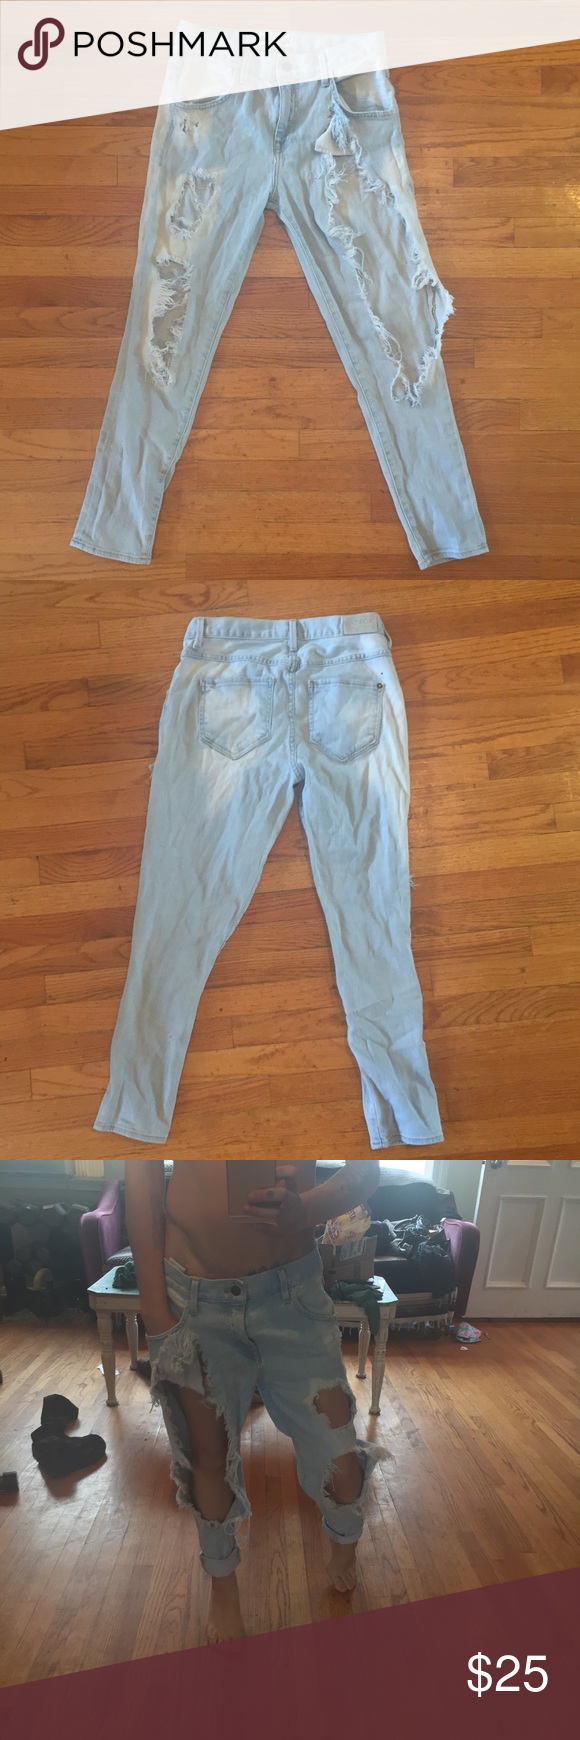 Wildfox Couture Marissa distressed boyfriend jeans Wildfox Couture Marissa ultra distressed boyfriend jeans. Size 24 but could work for a 25. I love these but I need to make room in my closet. All prices are negotiable! Make me an offer! ☺️ Wildfox Jeans Boyfriend